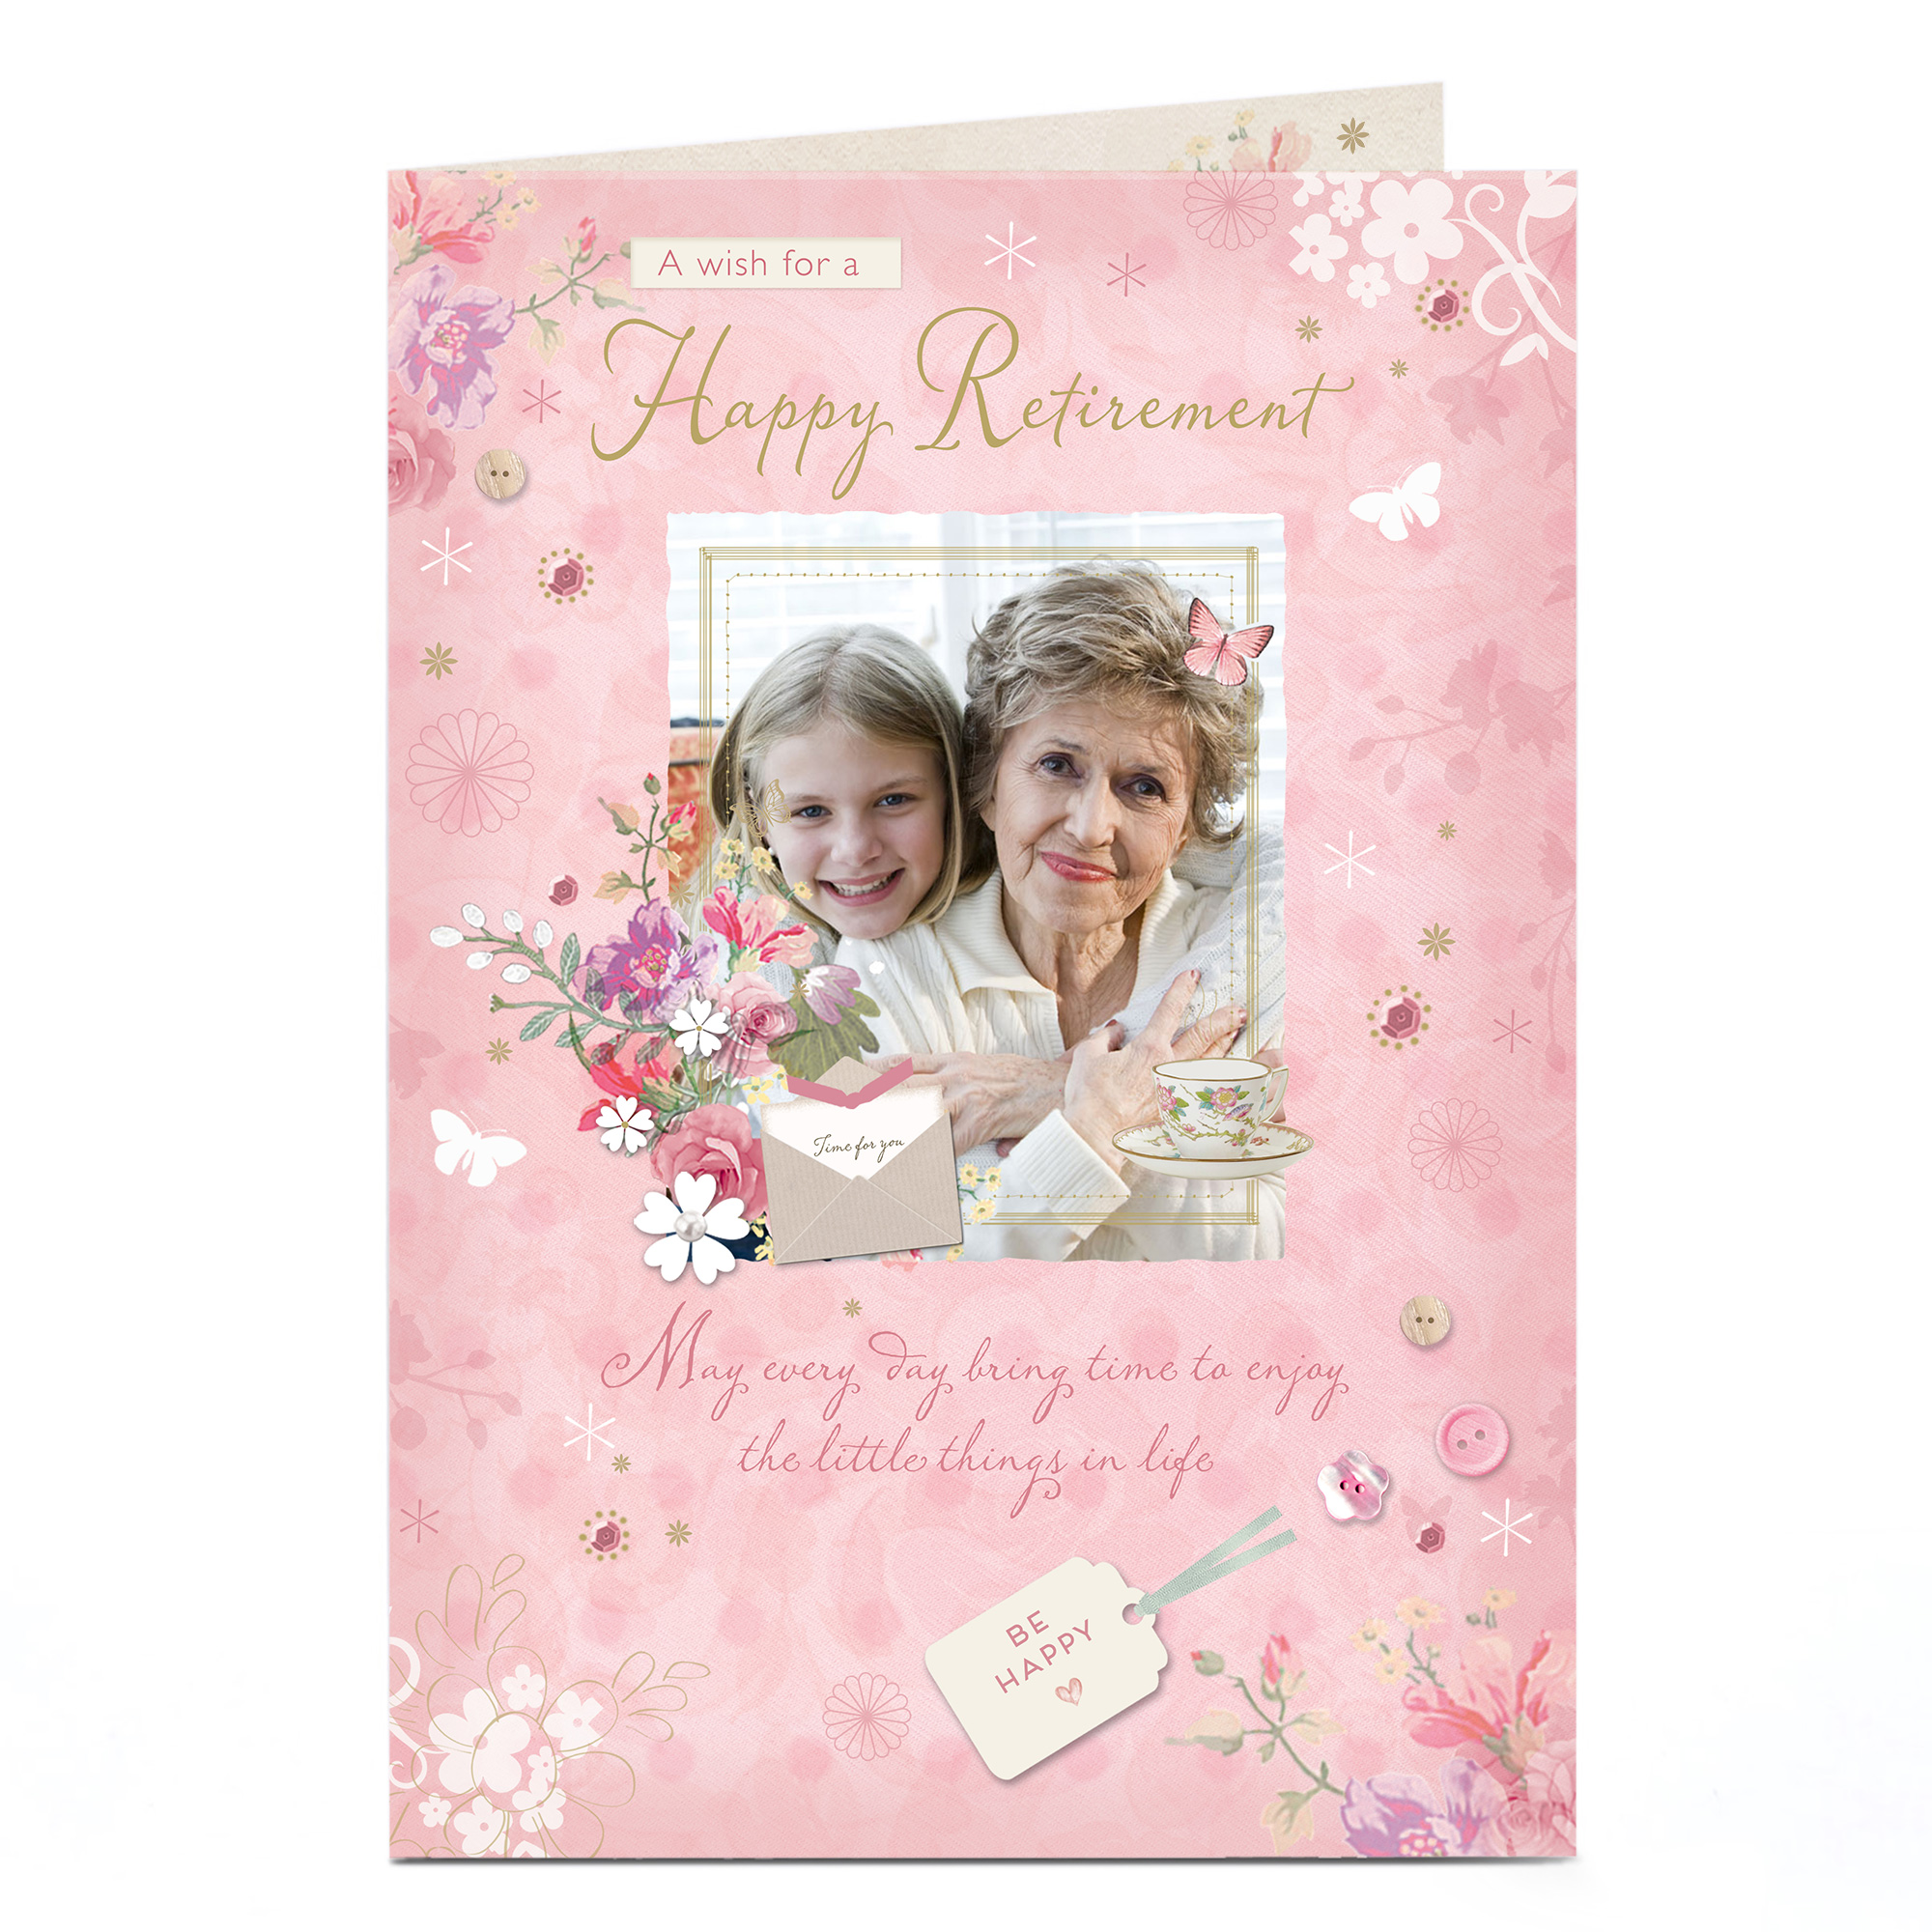 Photo Retirement Card - Pink Flowers